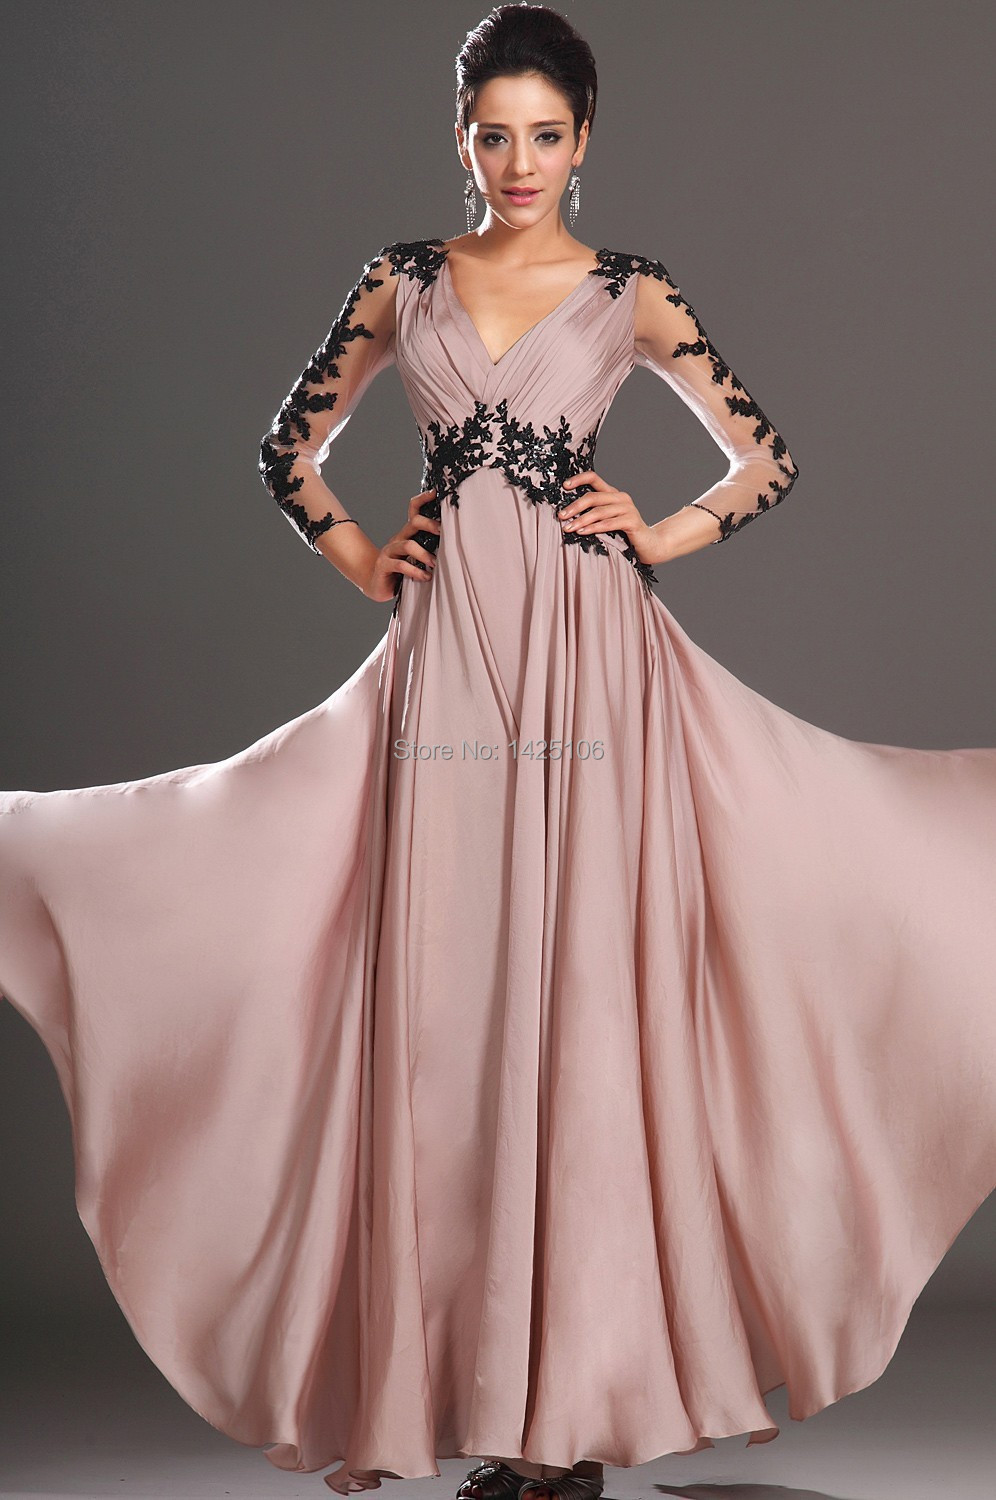 Evening Dresses Long New Year | Dress images